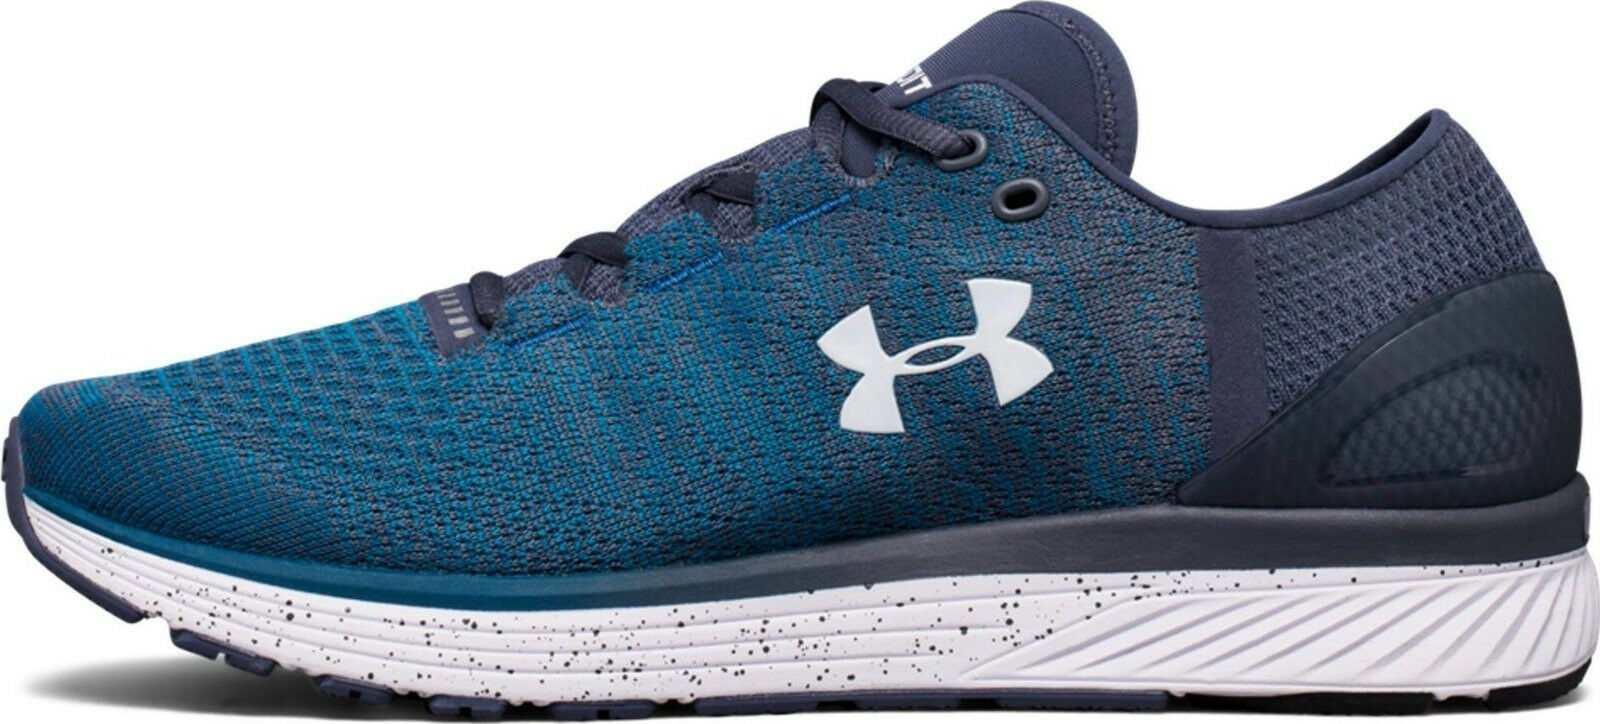 NWOB Under Armour Charged Bandit 3 Running Shoes 1295725-953  Size us 14-M